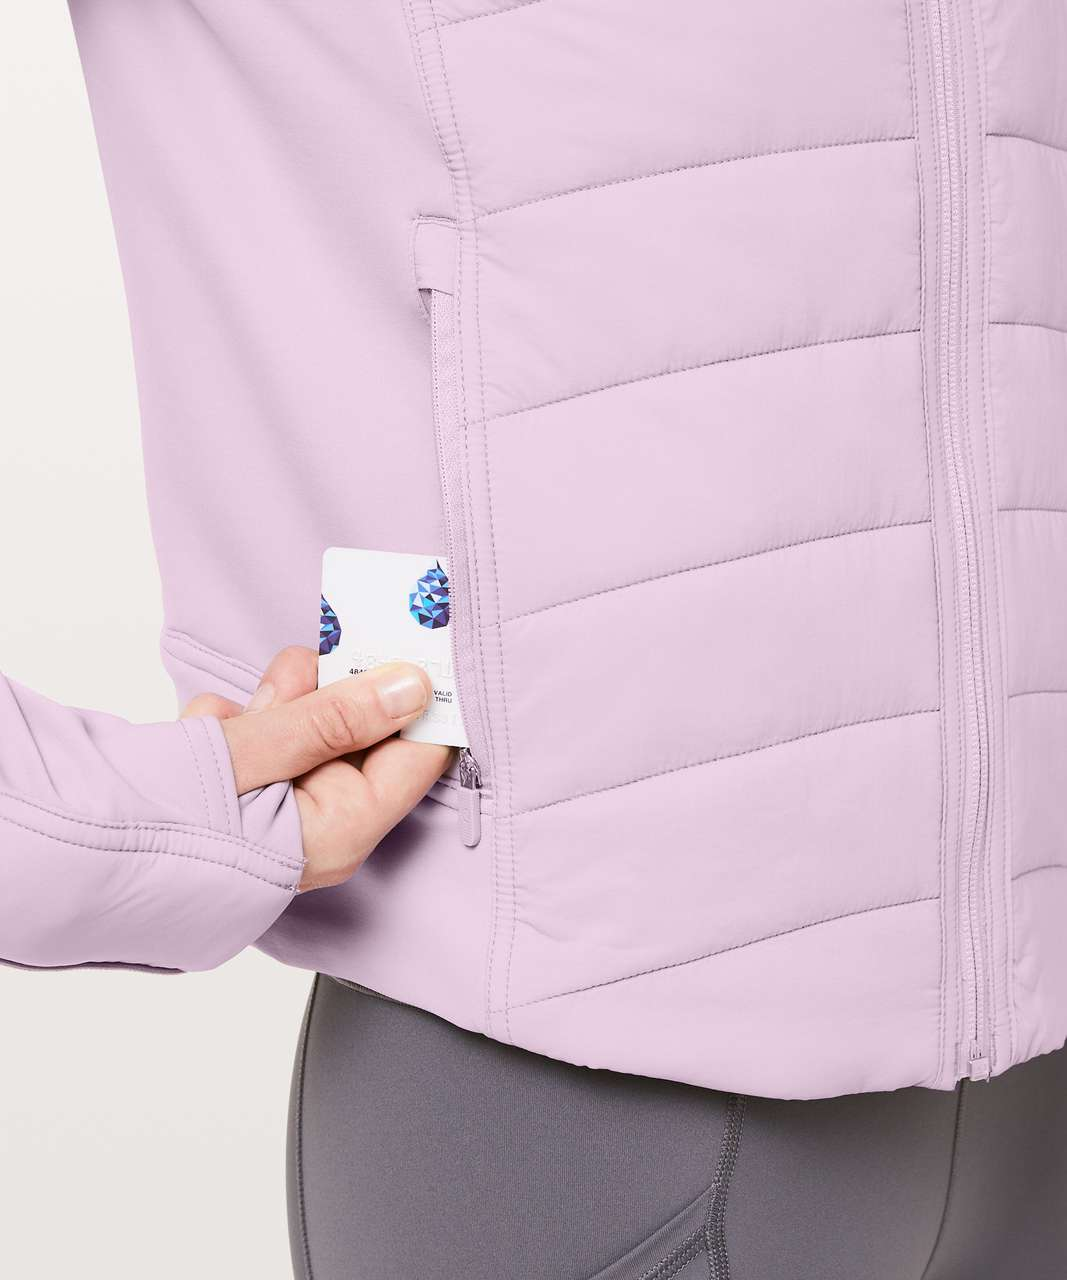 Lululemon Push Your Pace Jacket - Antoinette